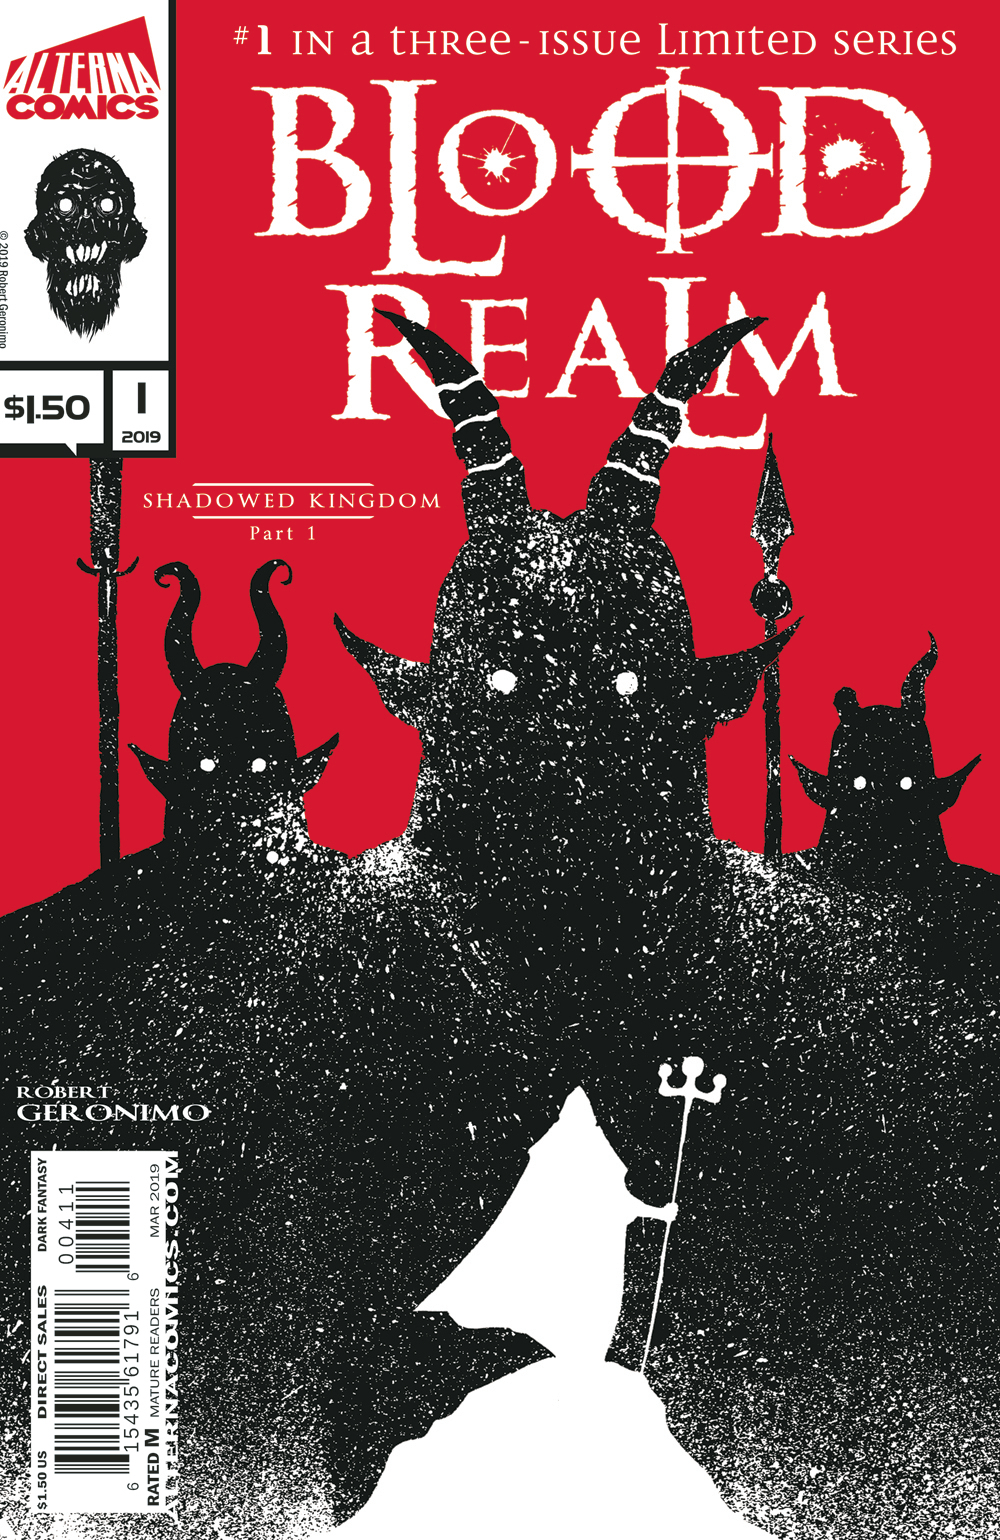 BLOOD REALM VOL 2 #1 (OF 3) (MR)